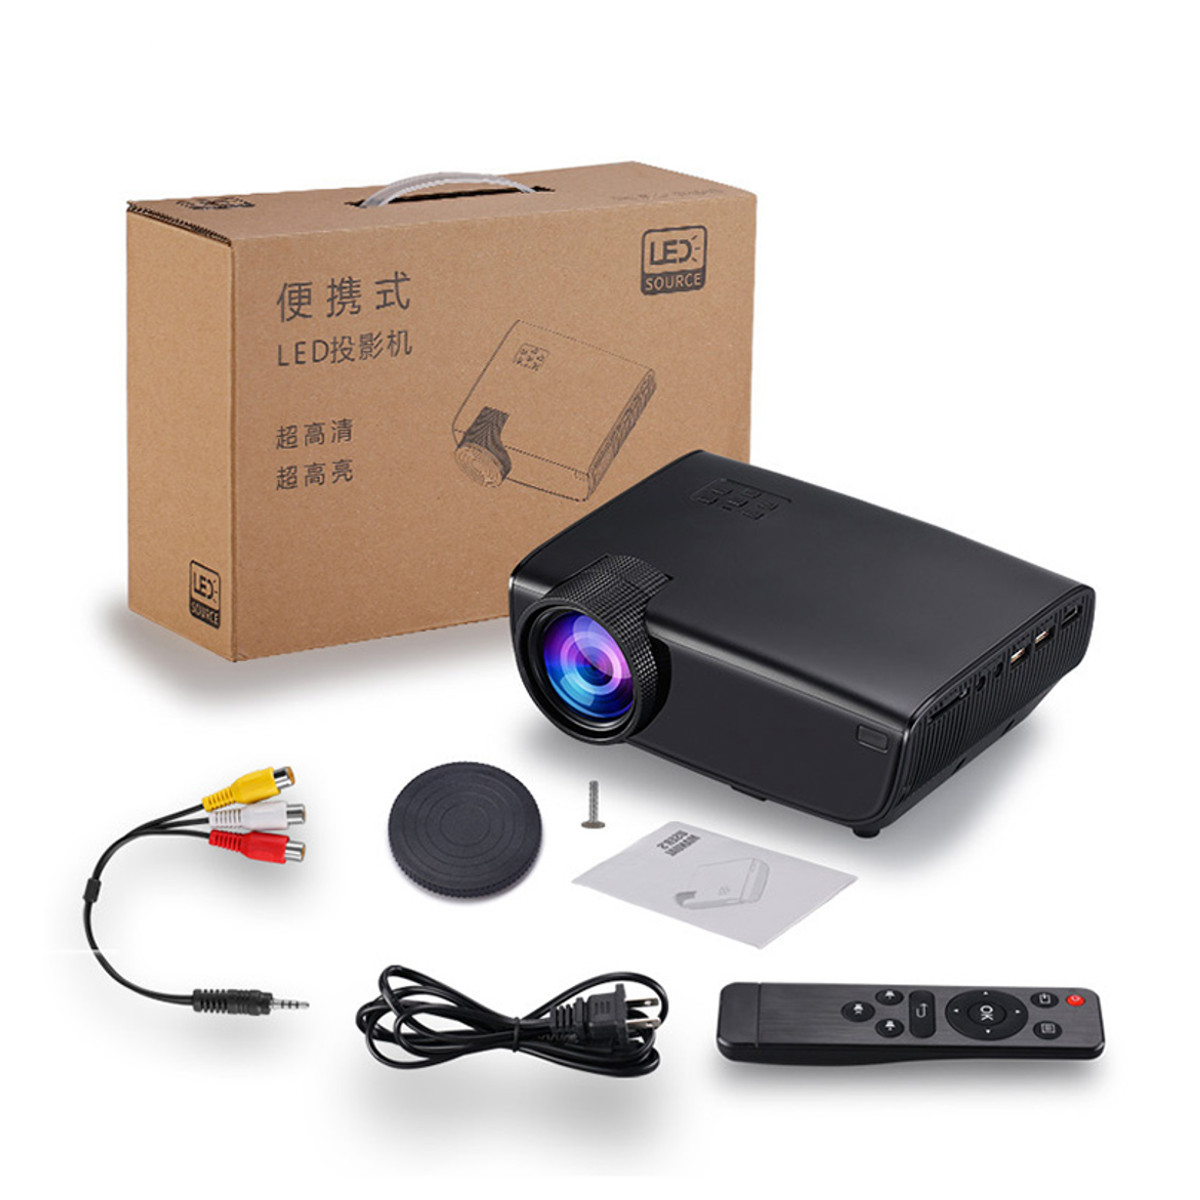 AN05 LCD Projector 70 ANSI Lumens 3.5mm Audio 800*480 Pixels HDMI USB Mini LED Projector Wireless Wifi Home Theatre Media Player Pico Projector